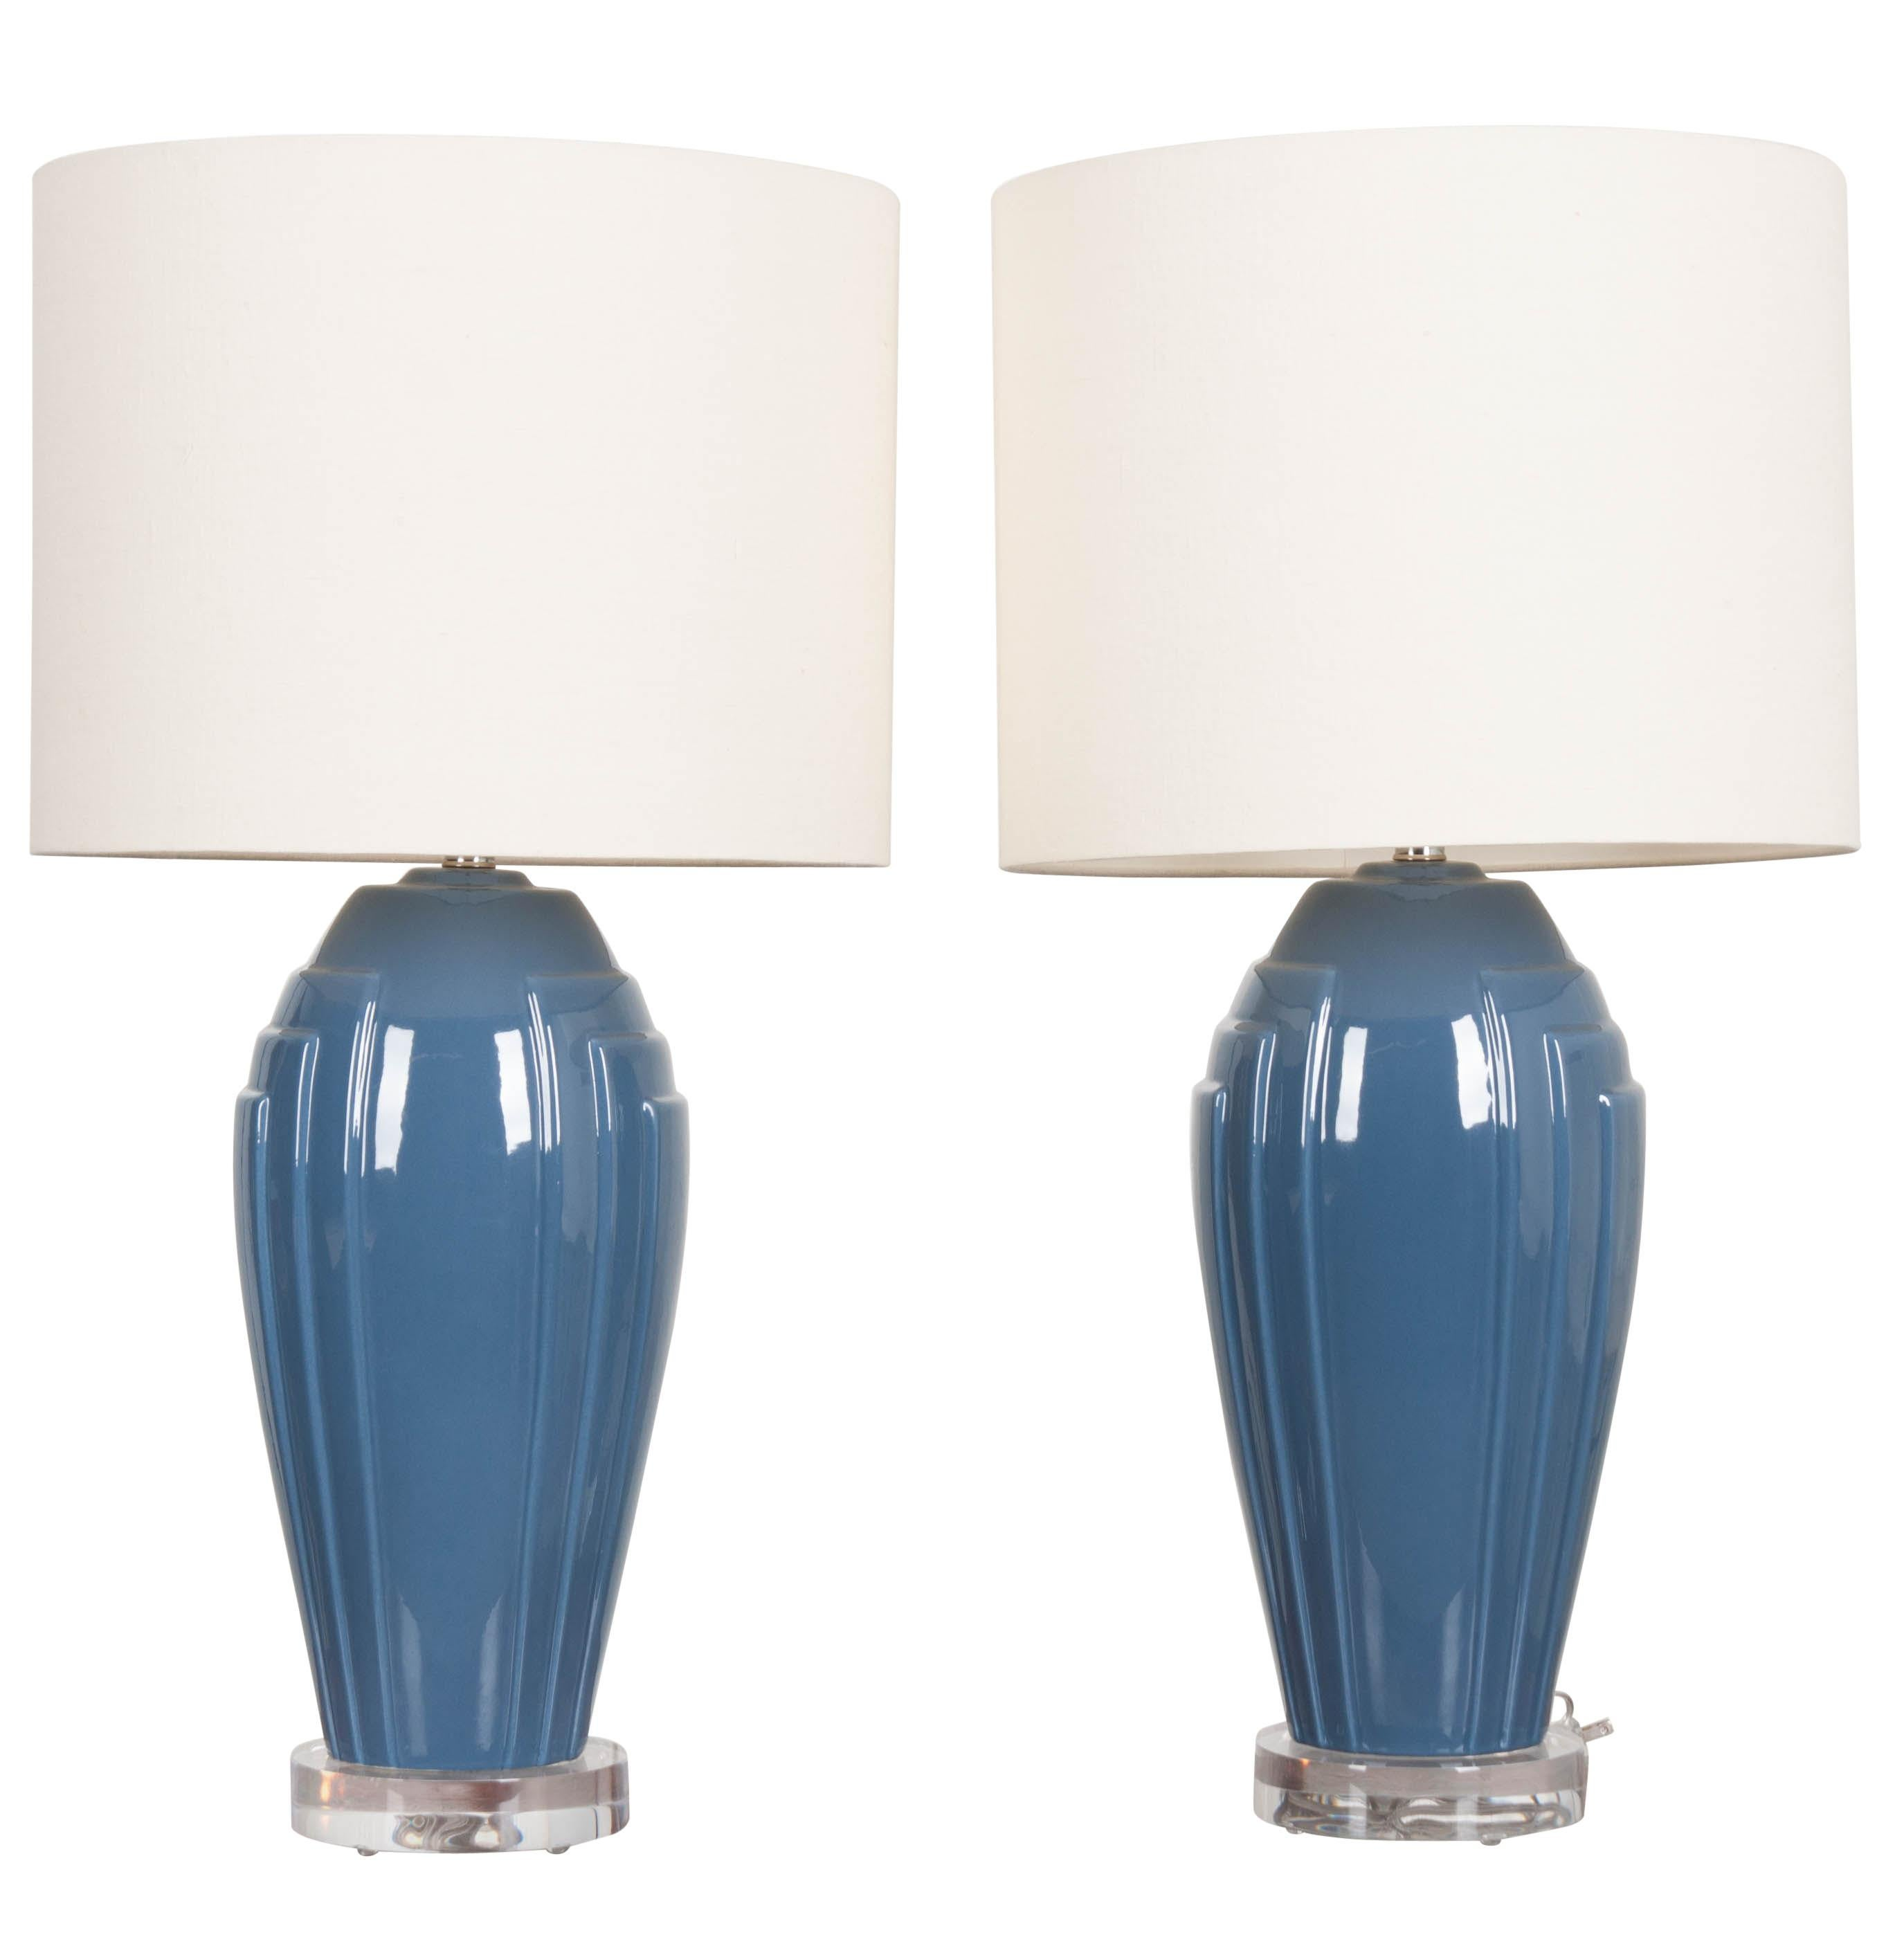 Pair of Vintage Art Deco Style Lamps with Shades